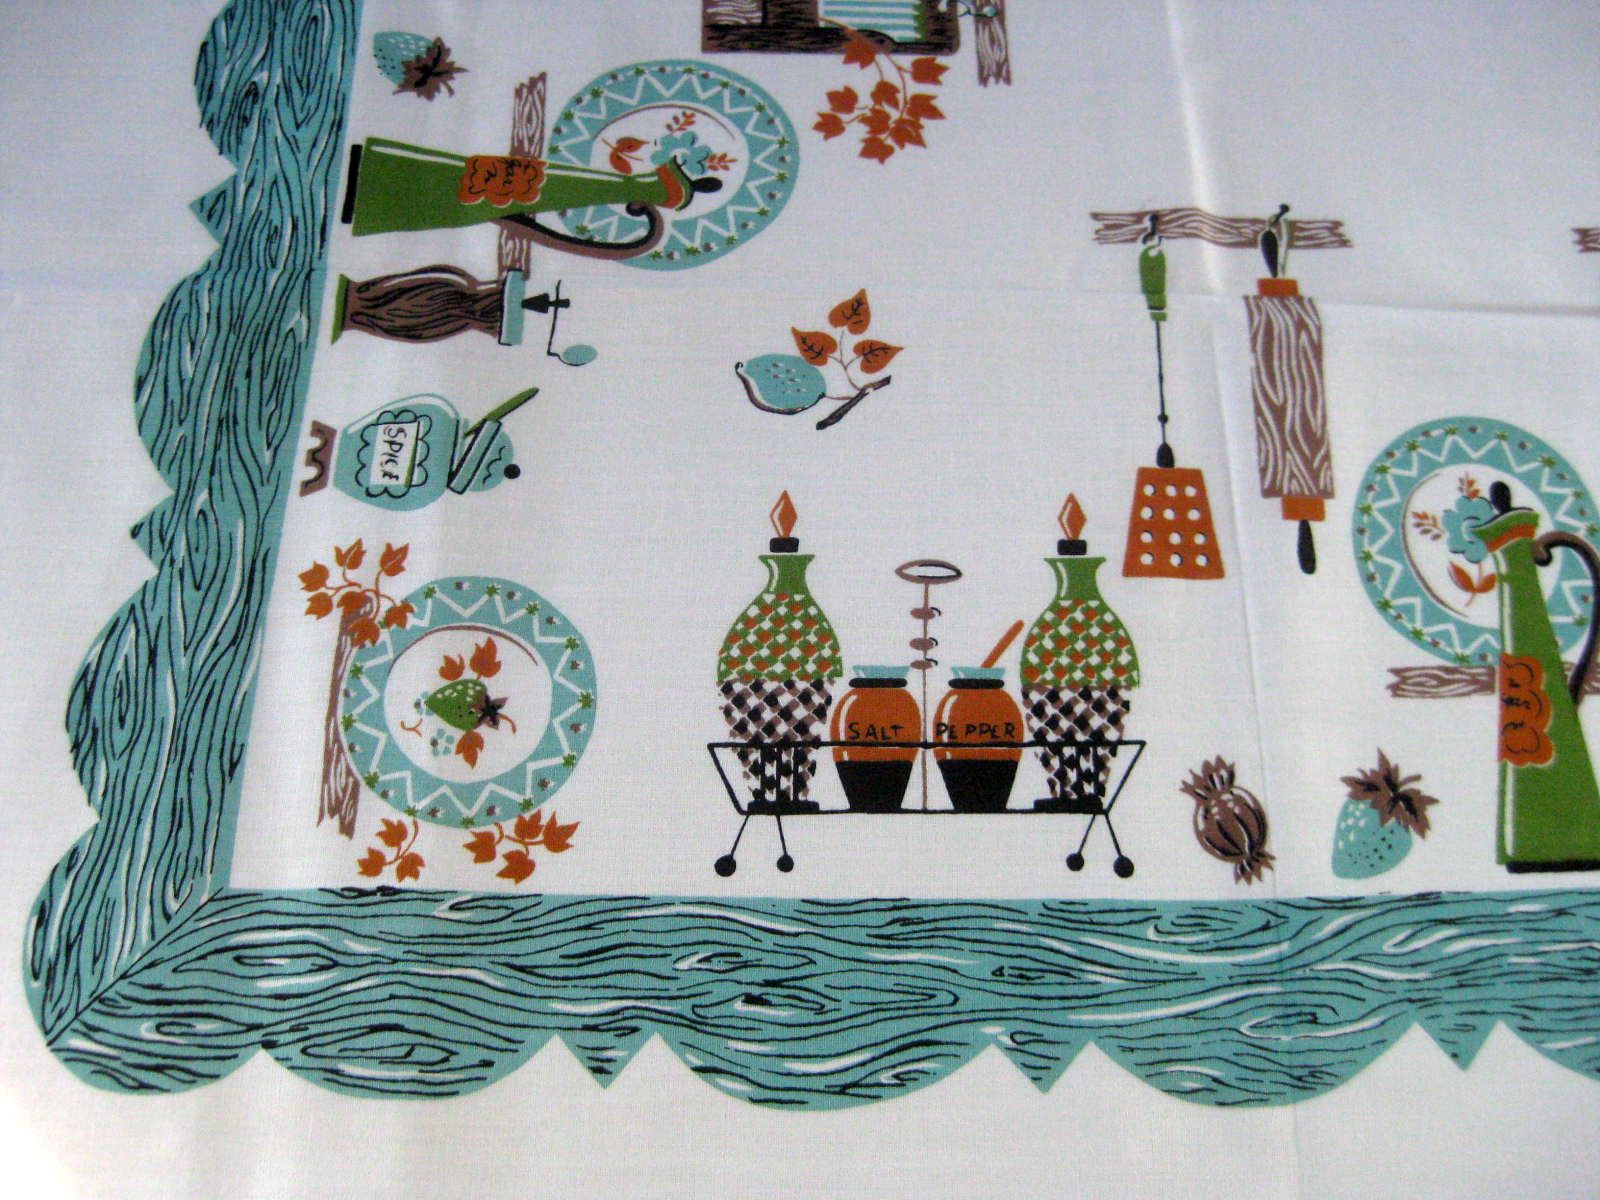 Funky Turquoise Kitchen Novelty MWT Vintage Tablecloth (69 X 52)